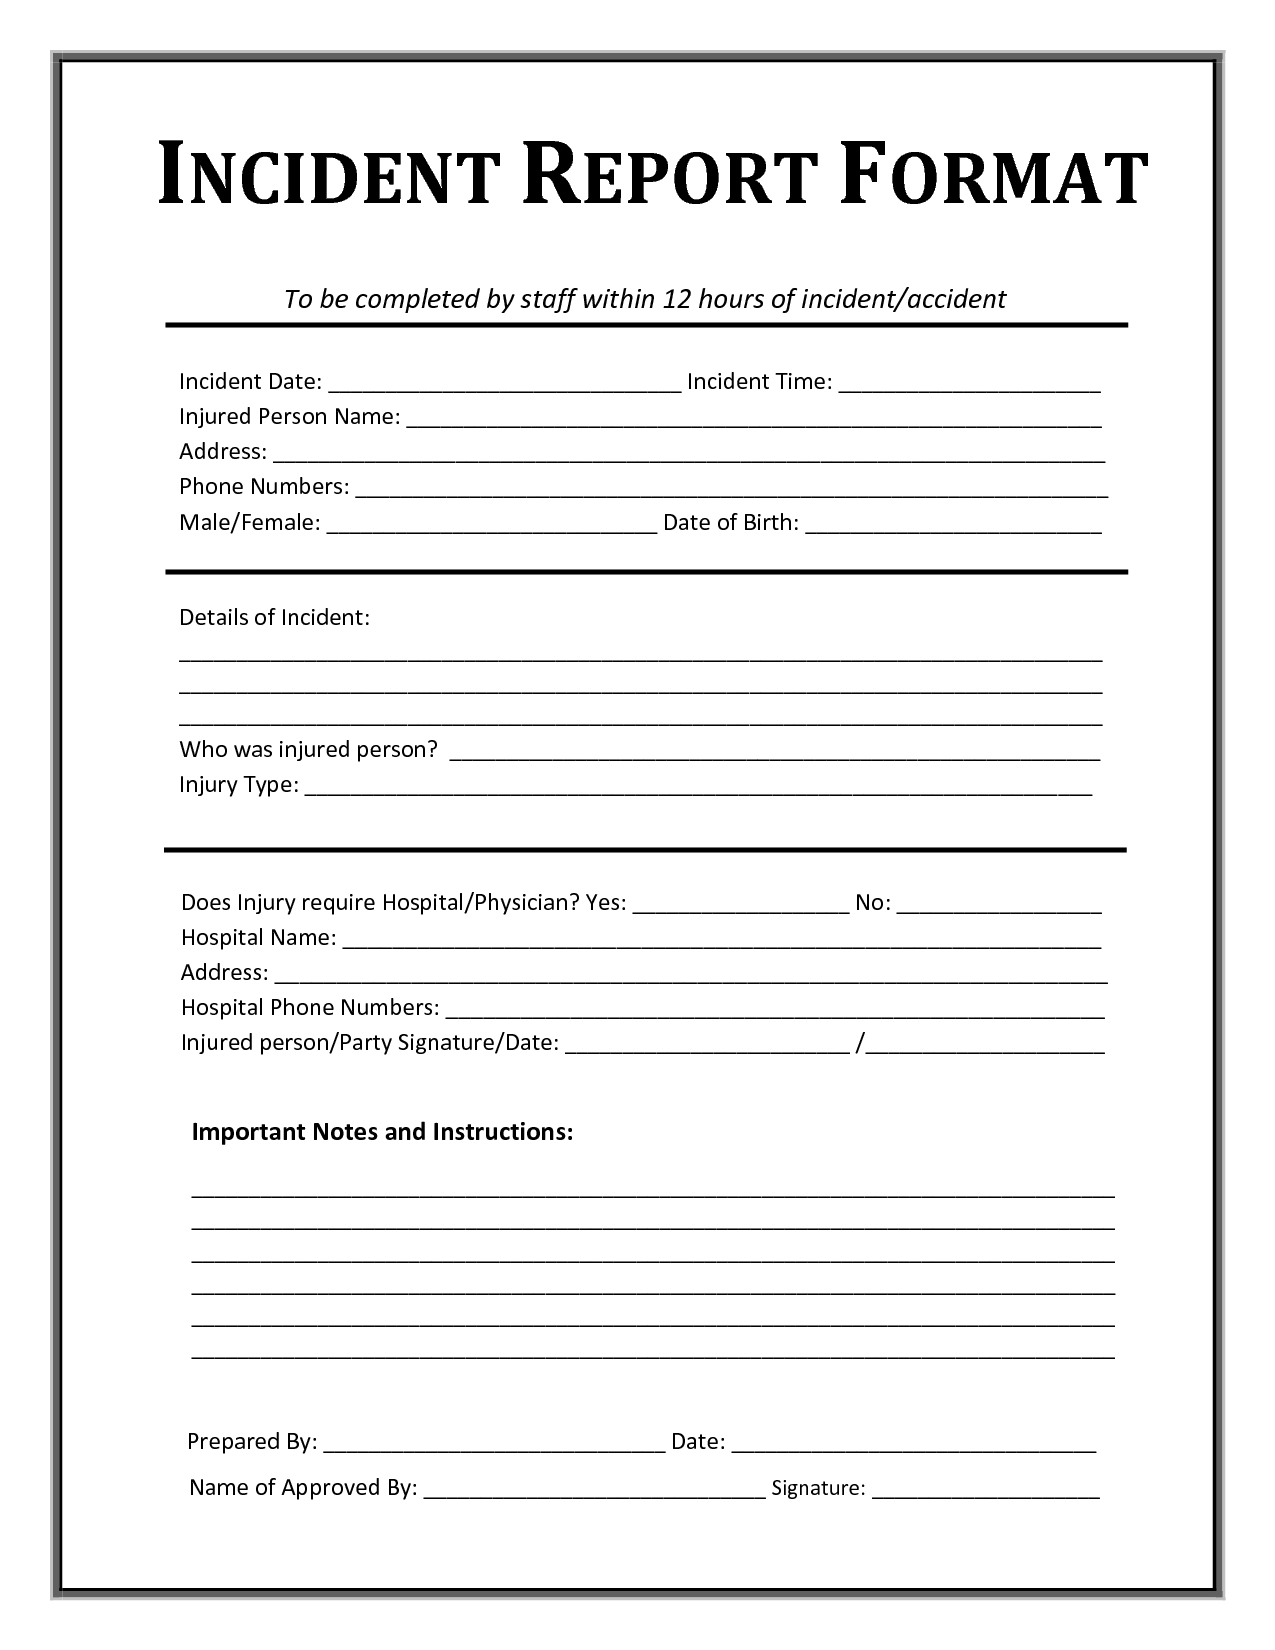 Incident Report Form Template | After School Sign In | Pinterest ...